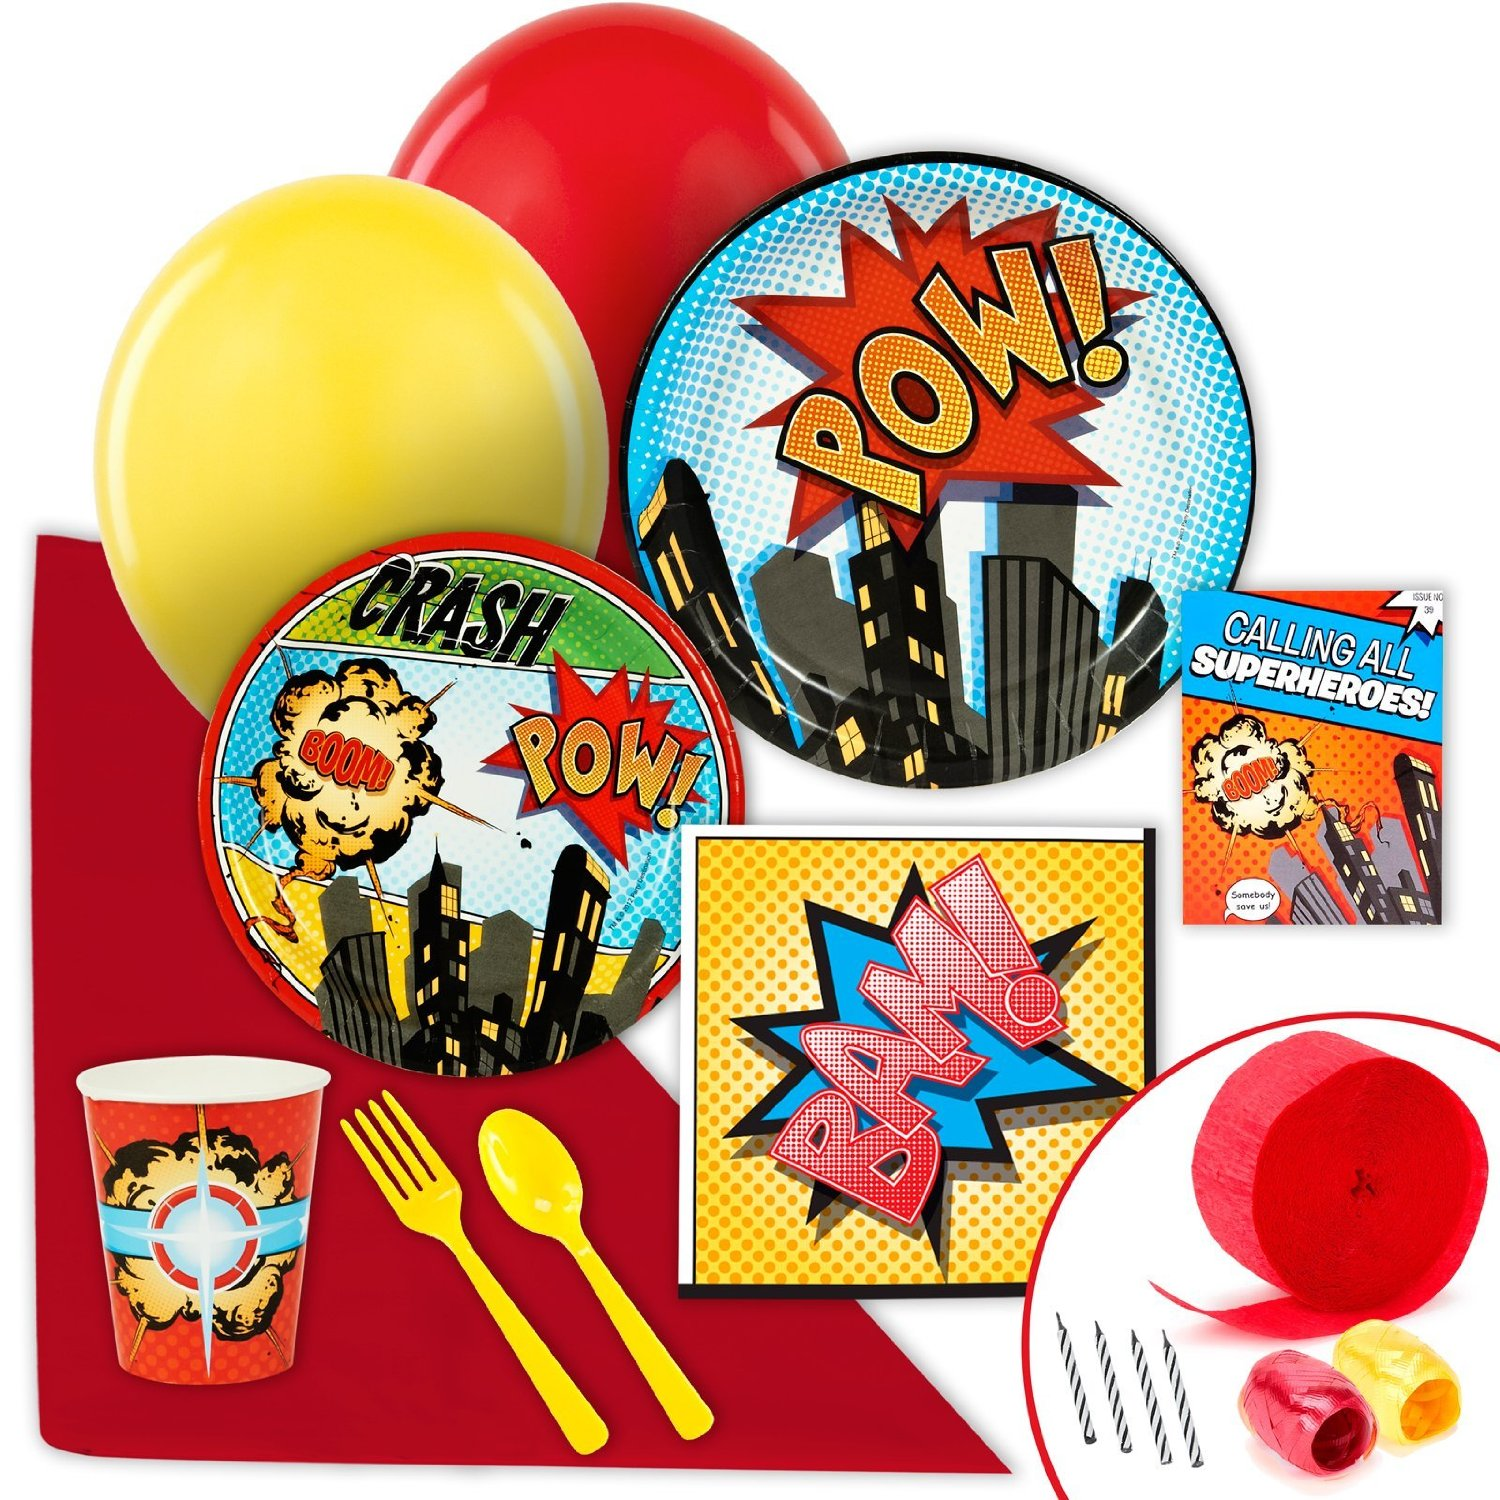 Teen Titans Go Birthday Party Theme Ideas and Supplies ...